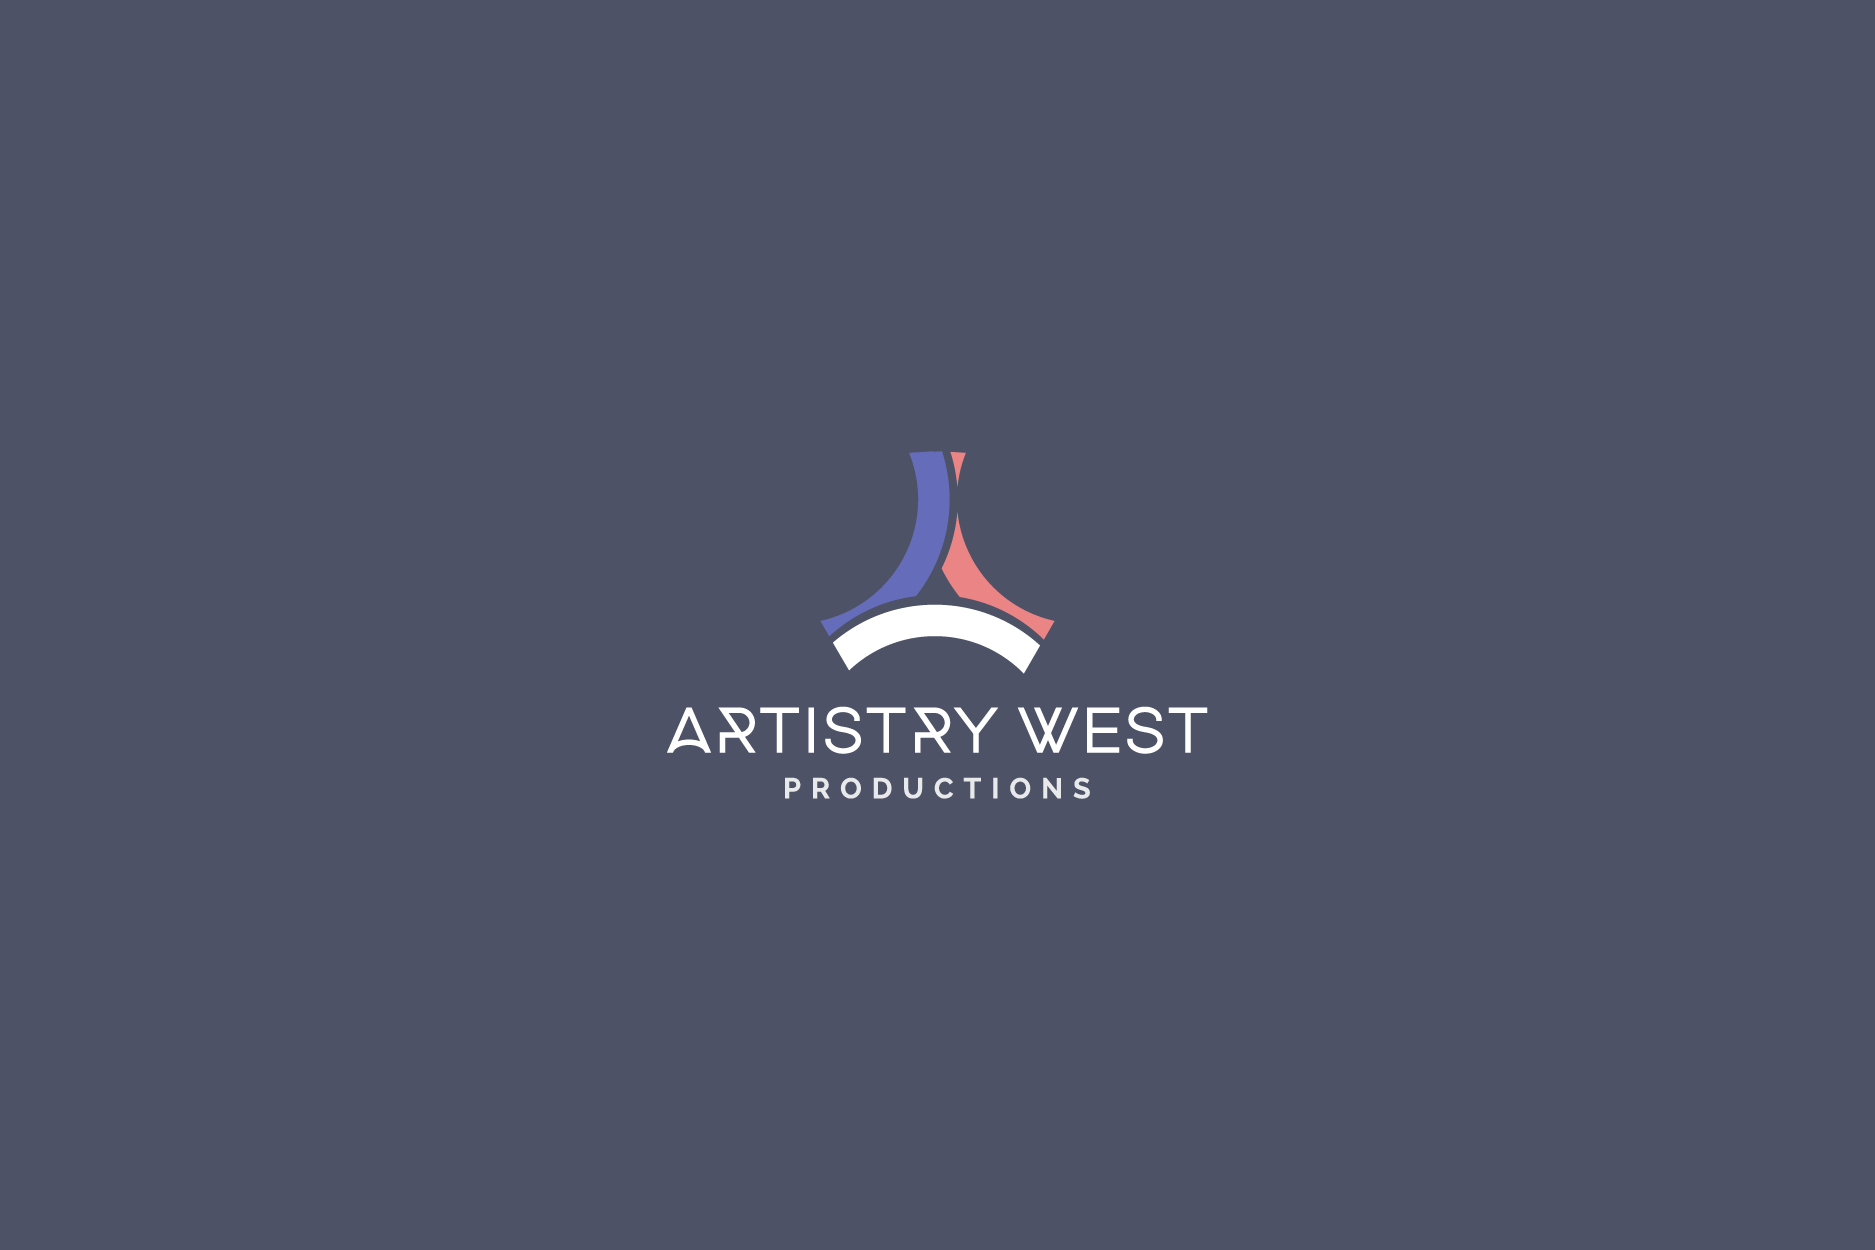 ARtistRy_West01.png